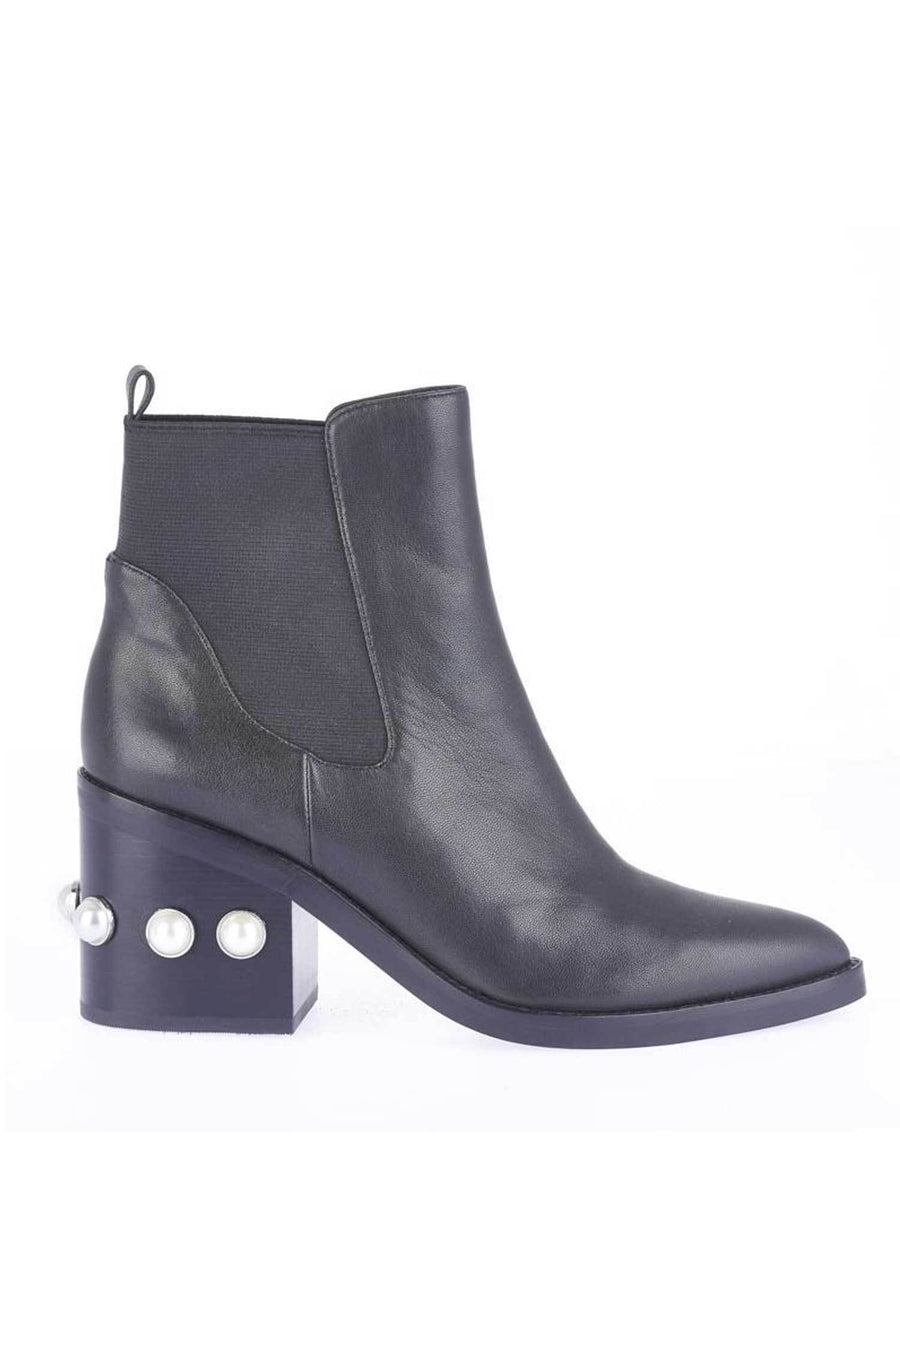 Shop Online Victoria Boot in Black Pearl by Sol Sana  Frockaholics Shoes